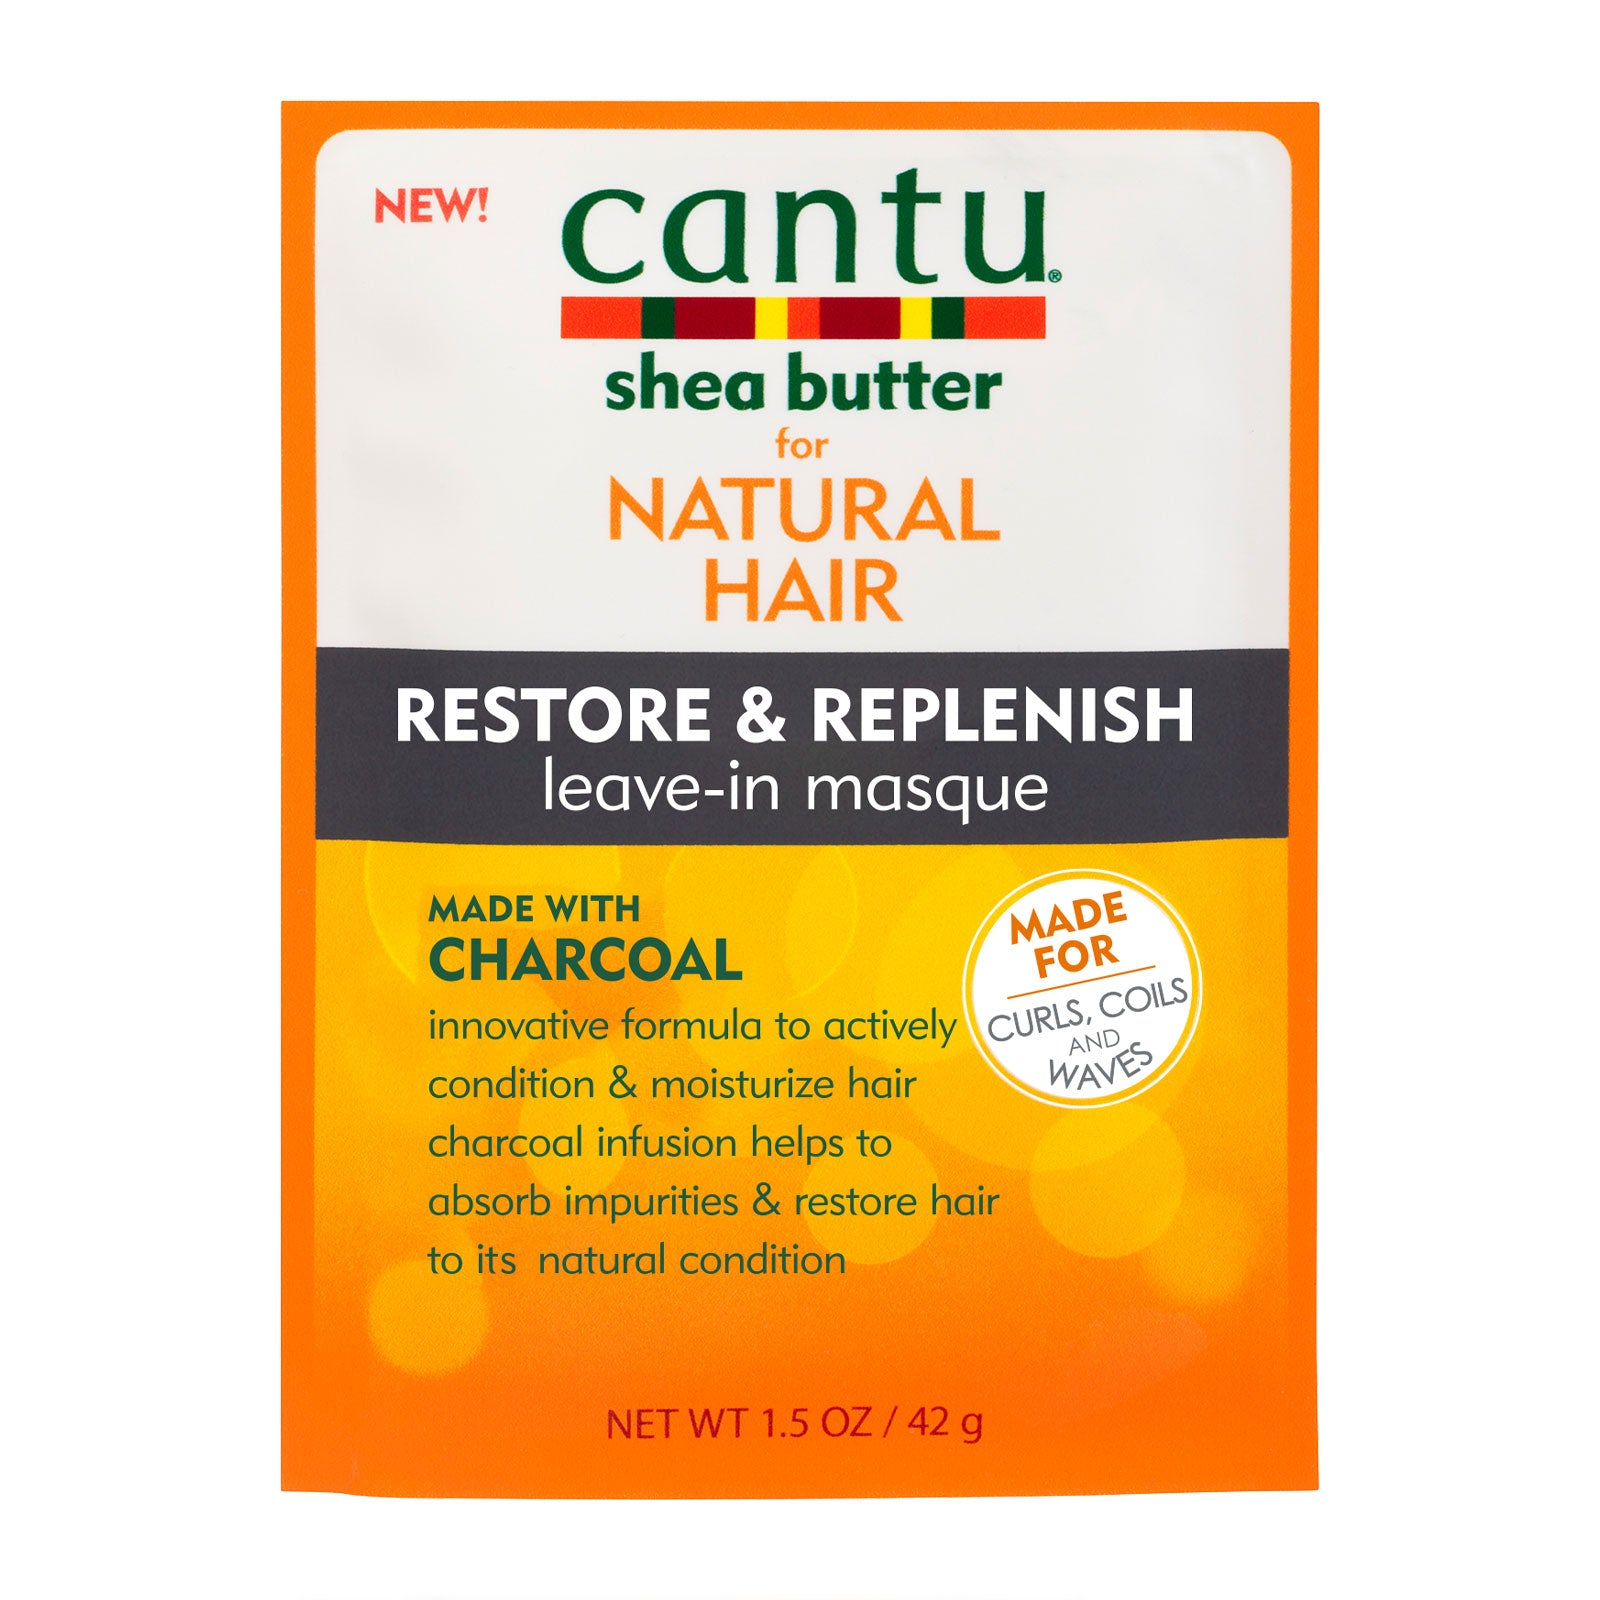 Cantu Restore & Replenish Leave-in Masque with Charcoal 50g